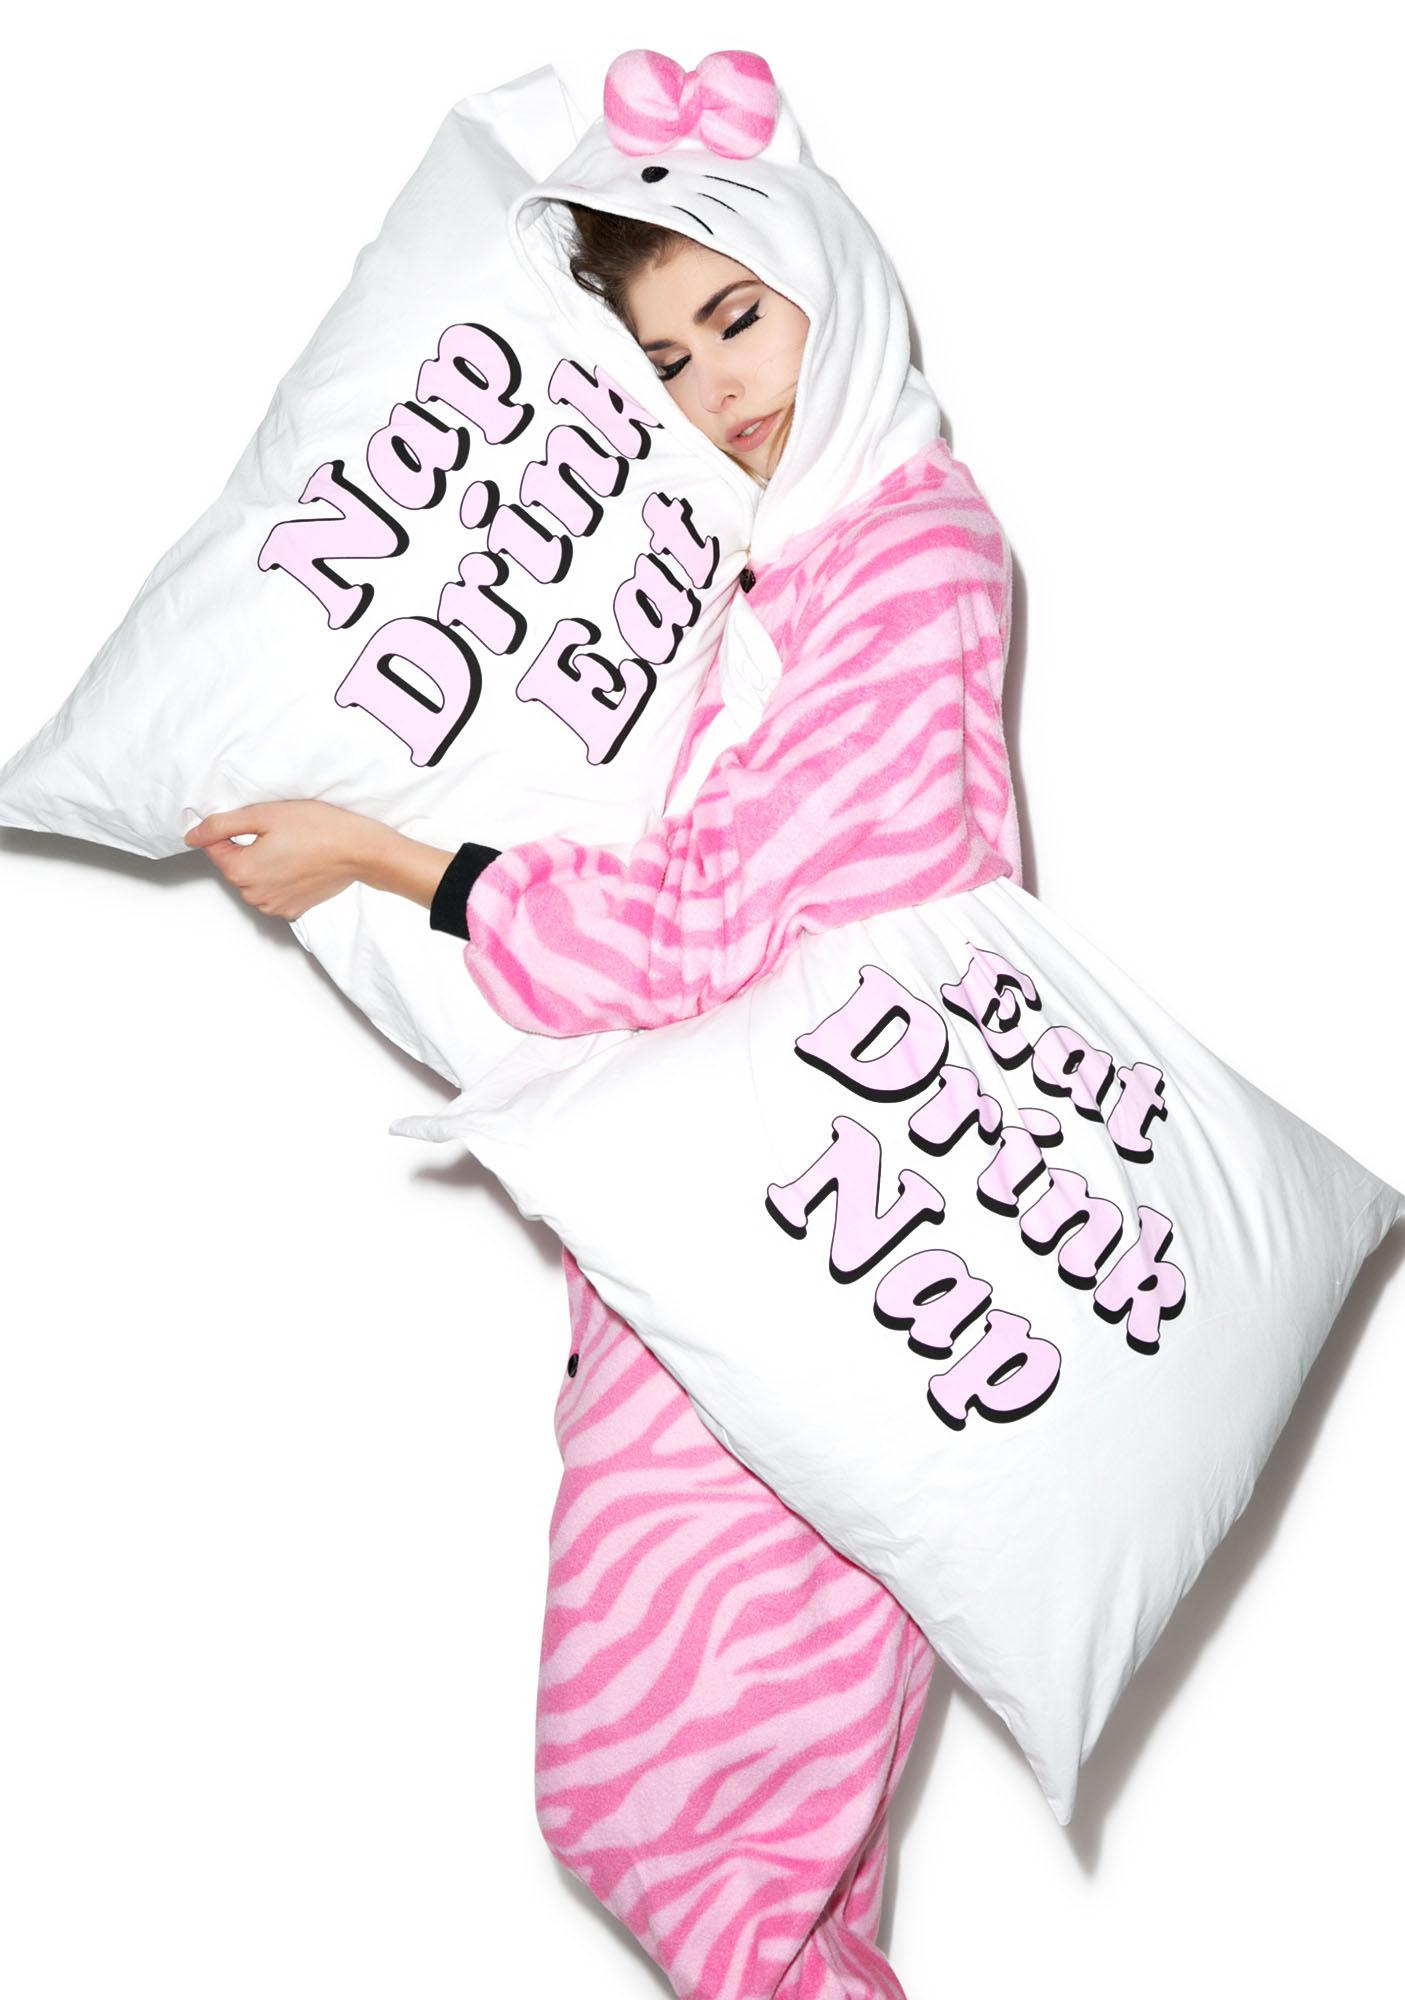 Jac Vanek Eat Drink Nap Pillowcase Set